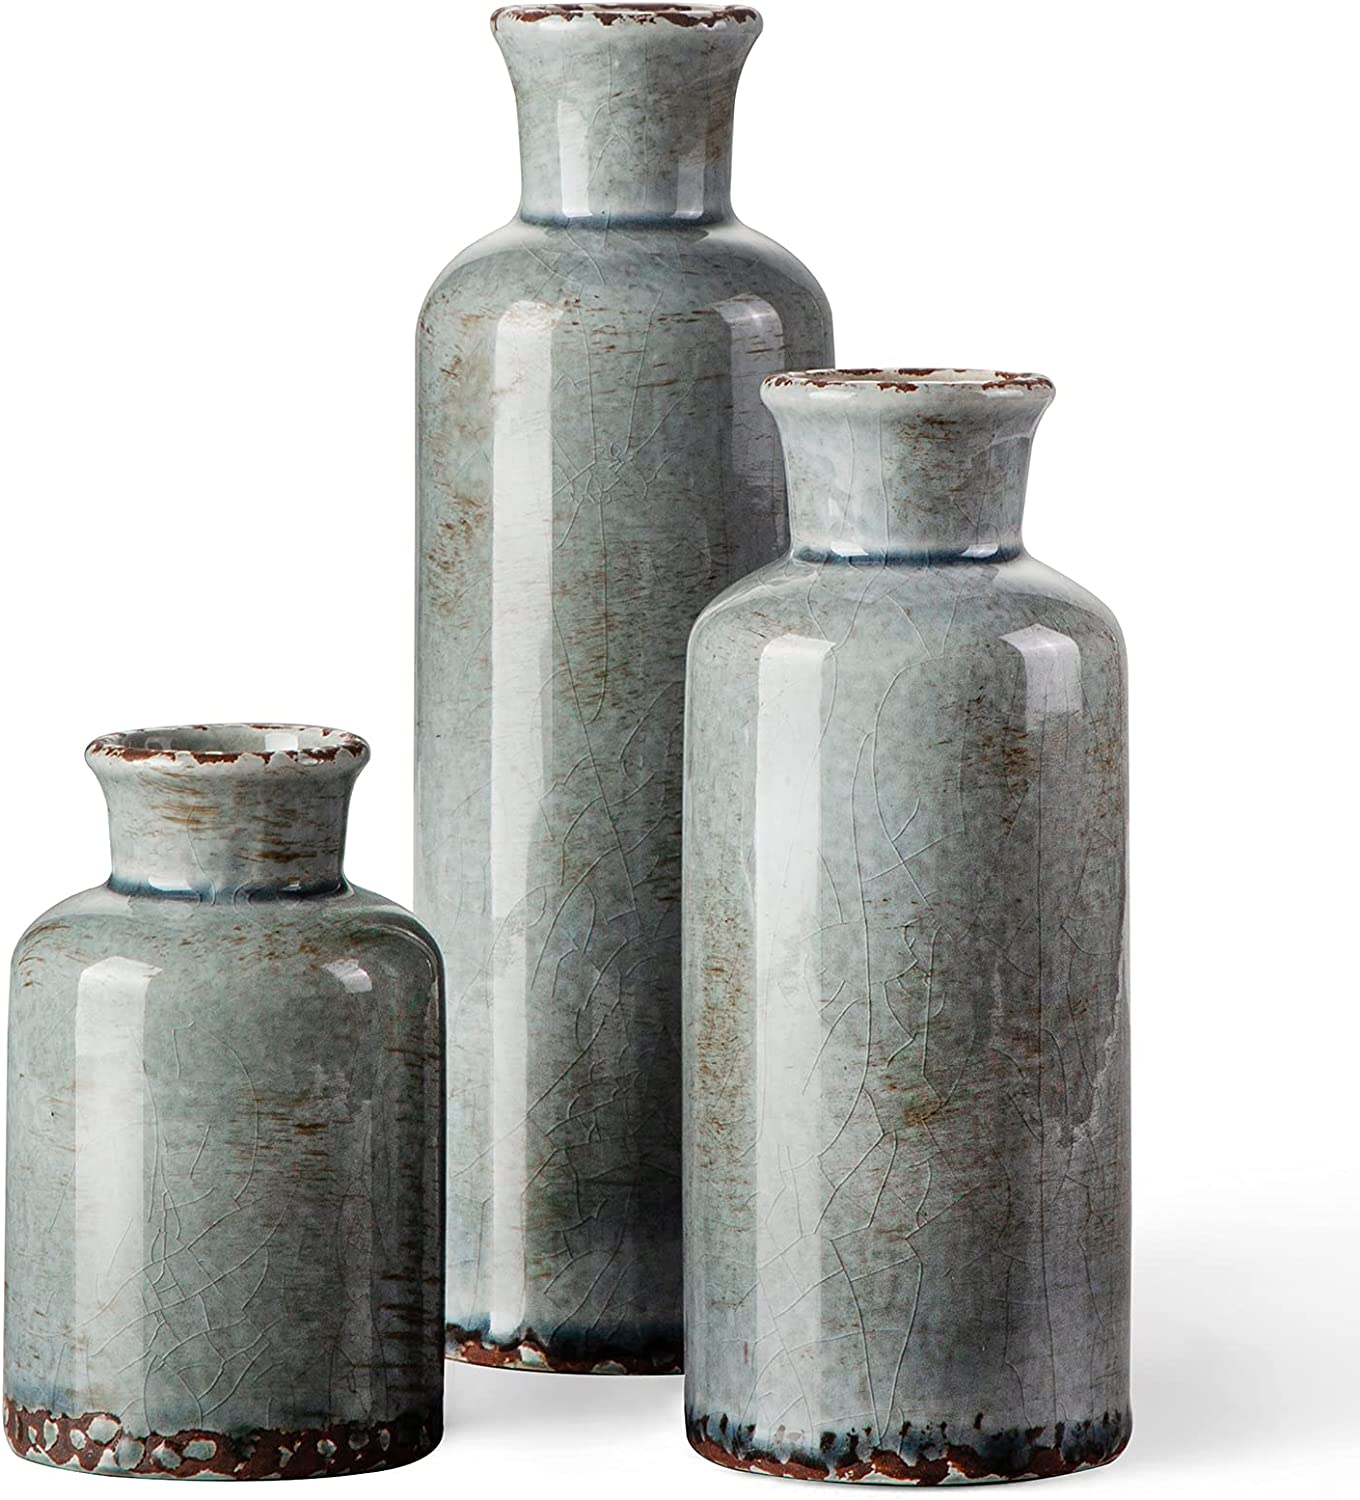 CwlwGO- Ceramic Rustic Vase for Home Decor, Set of 3 Small Decorative Vases for Table, Tabletop Shelf, Living Room,Retro Blue,Great for Adding a Decorative Touch to Any room's Decor.